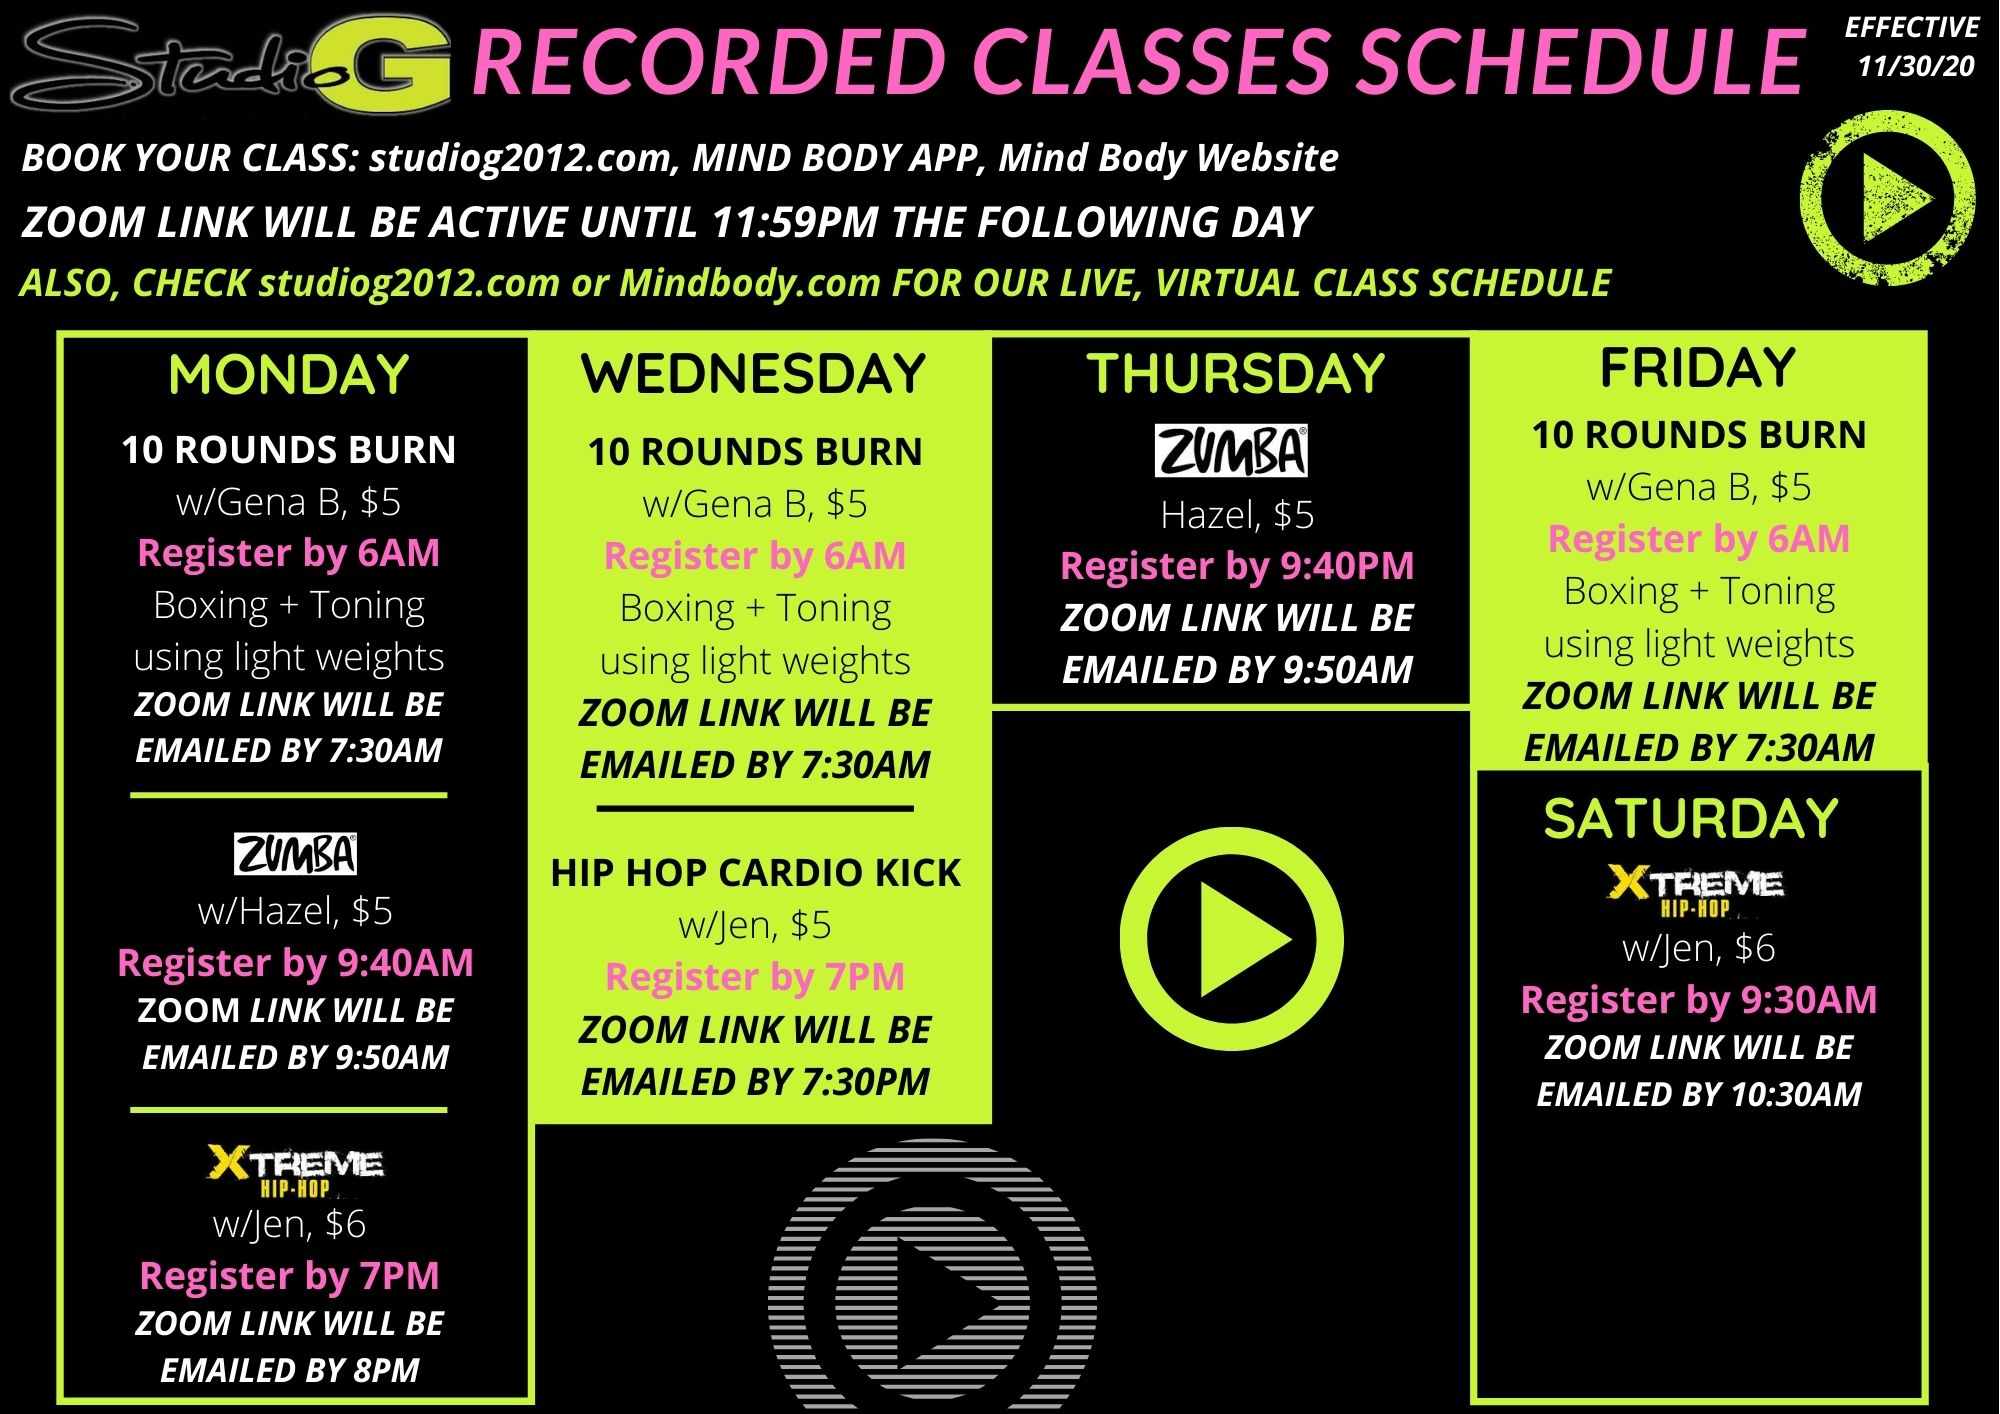 Recorded Classes